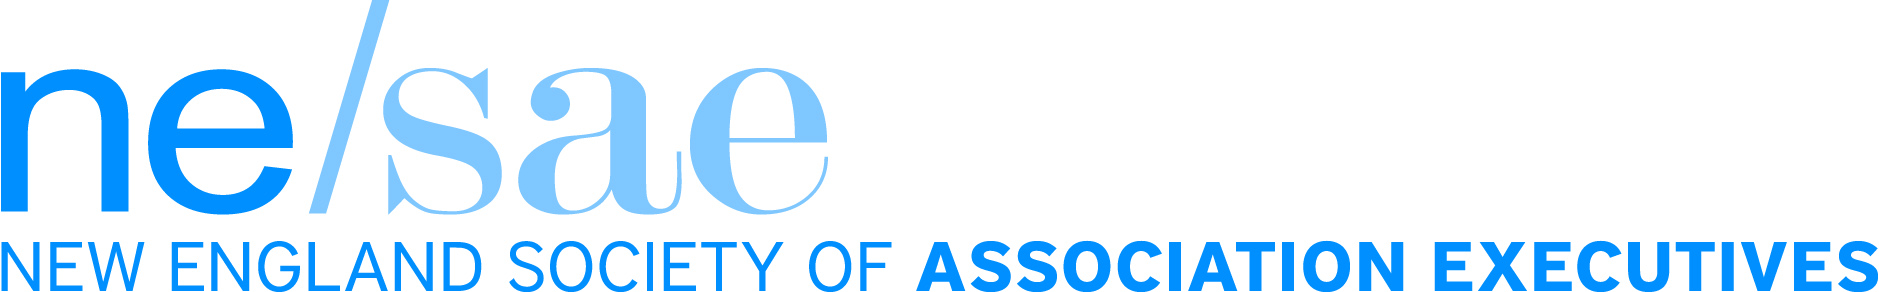 New England Society of Association Executives